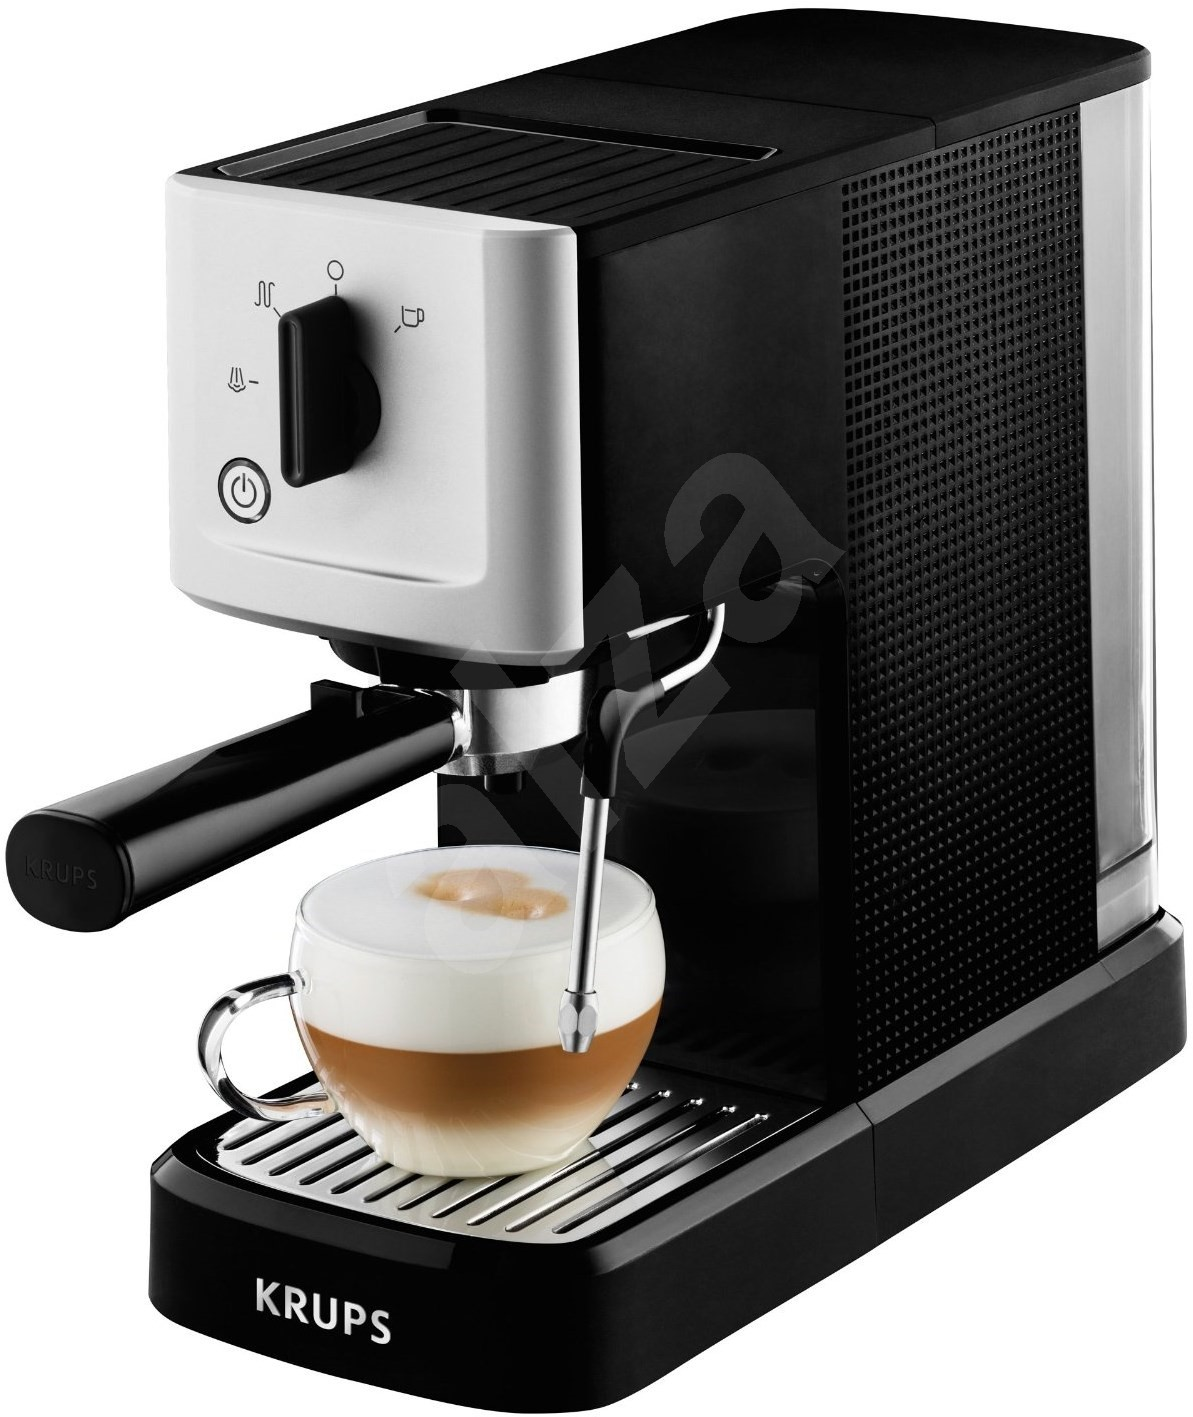 Krups Coffee Maker Km1000 Manual : Krups Calvi manual XP344010 - Lever coffee machine Alzashop.com